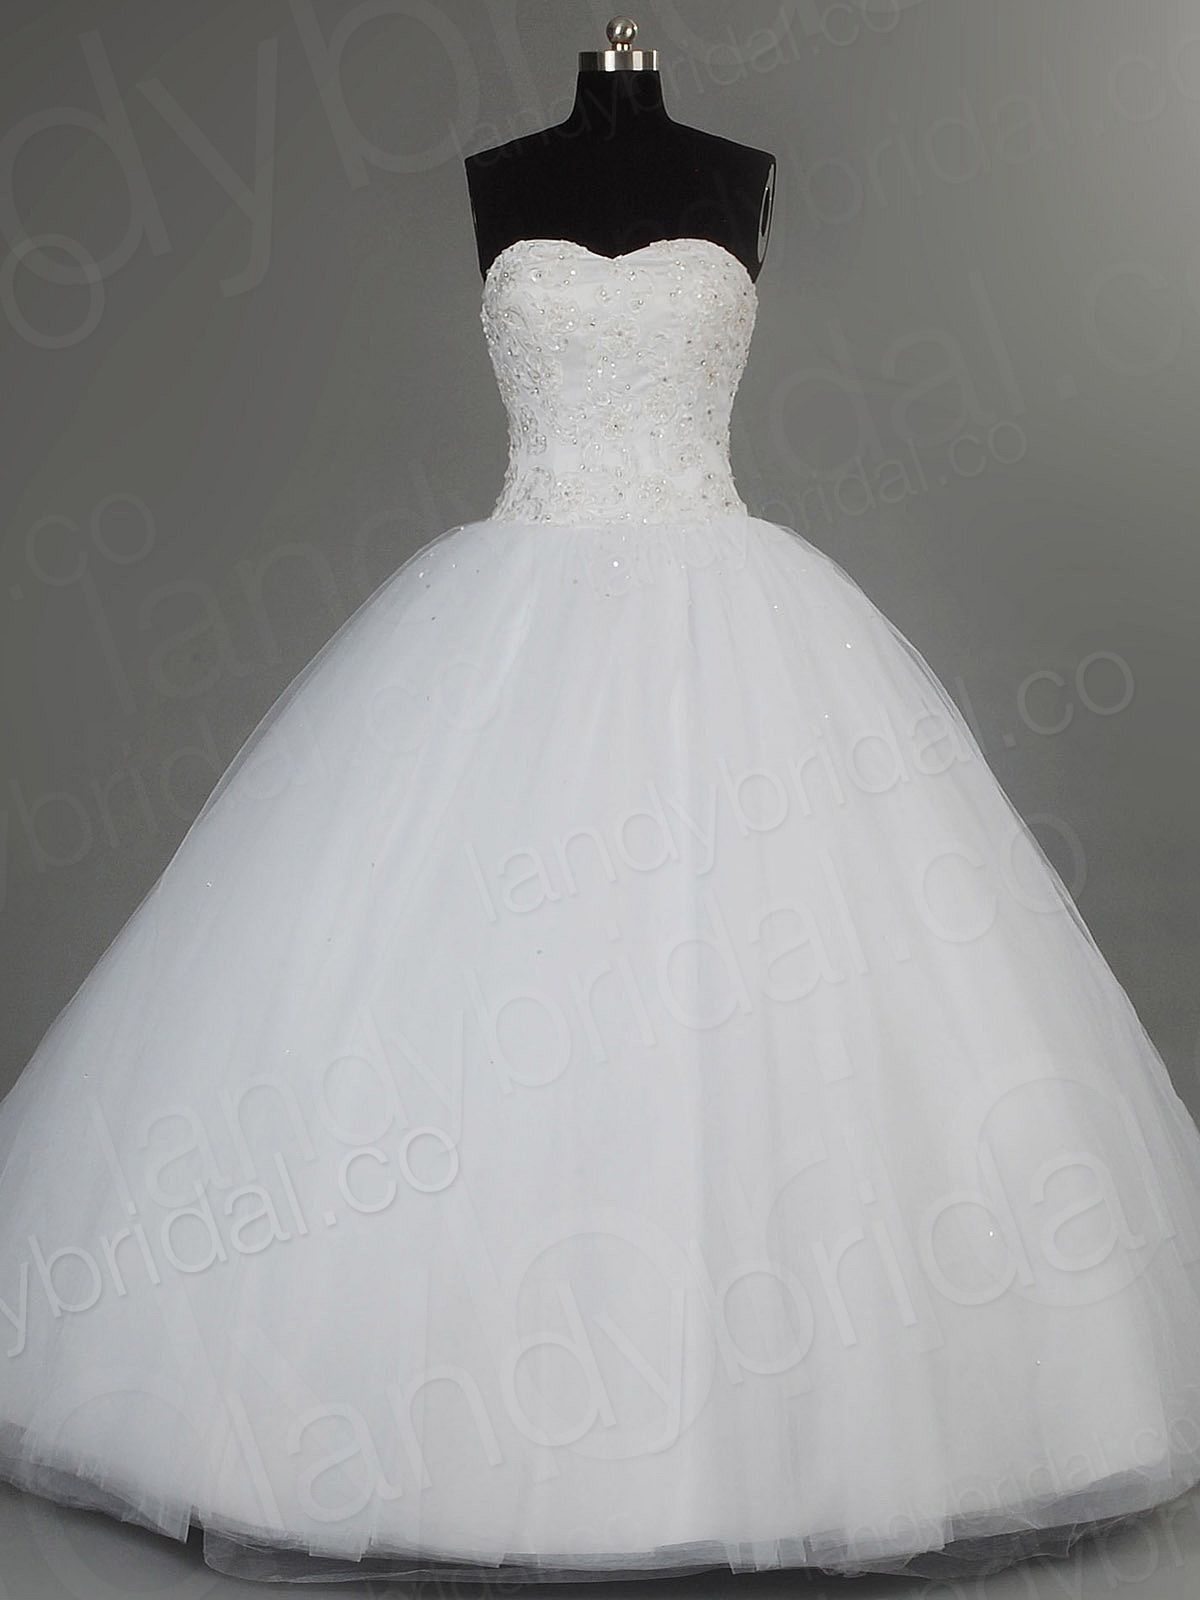 Huge Ball Gown Wedding Dresses With Bling : Huge wedding dresses on big bling weddin